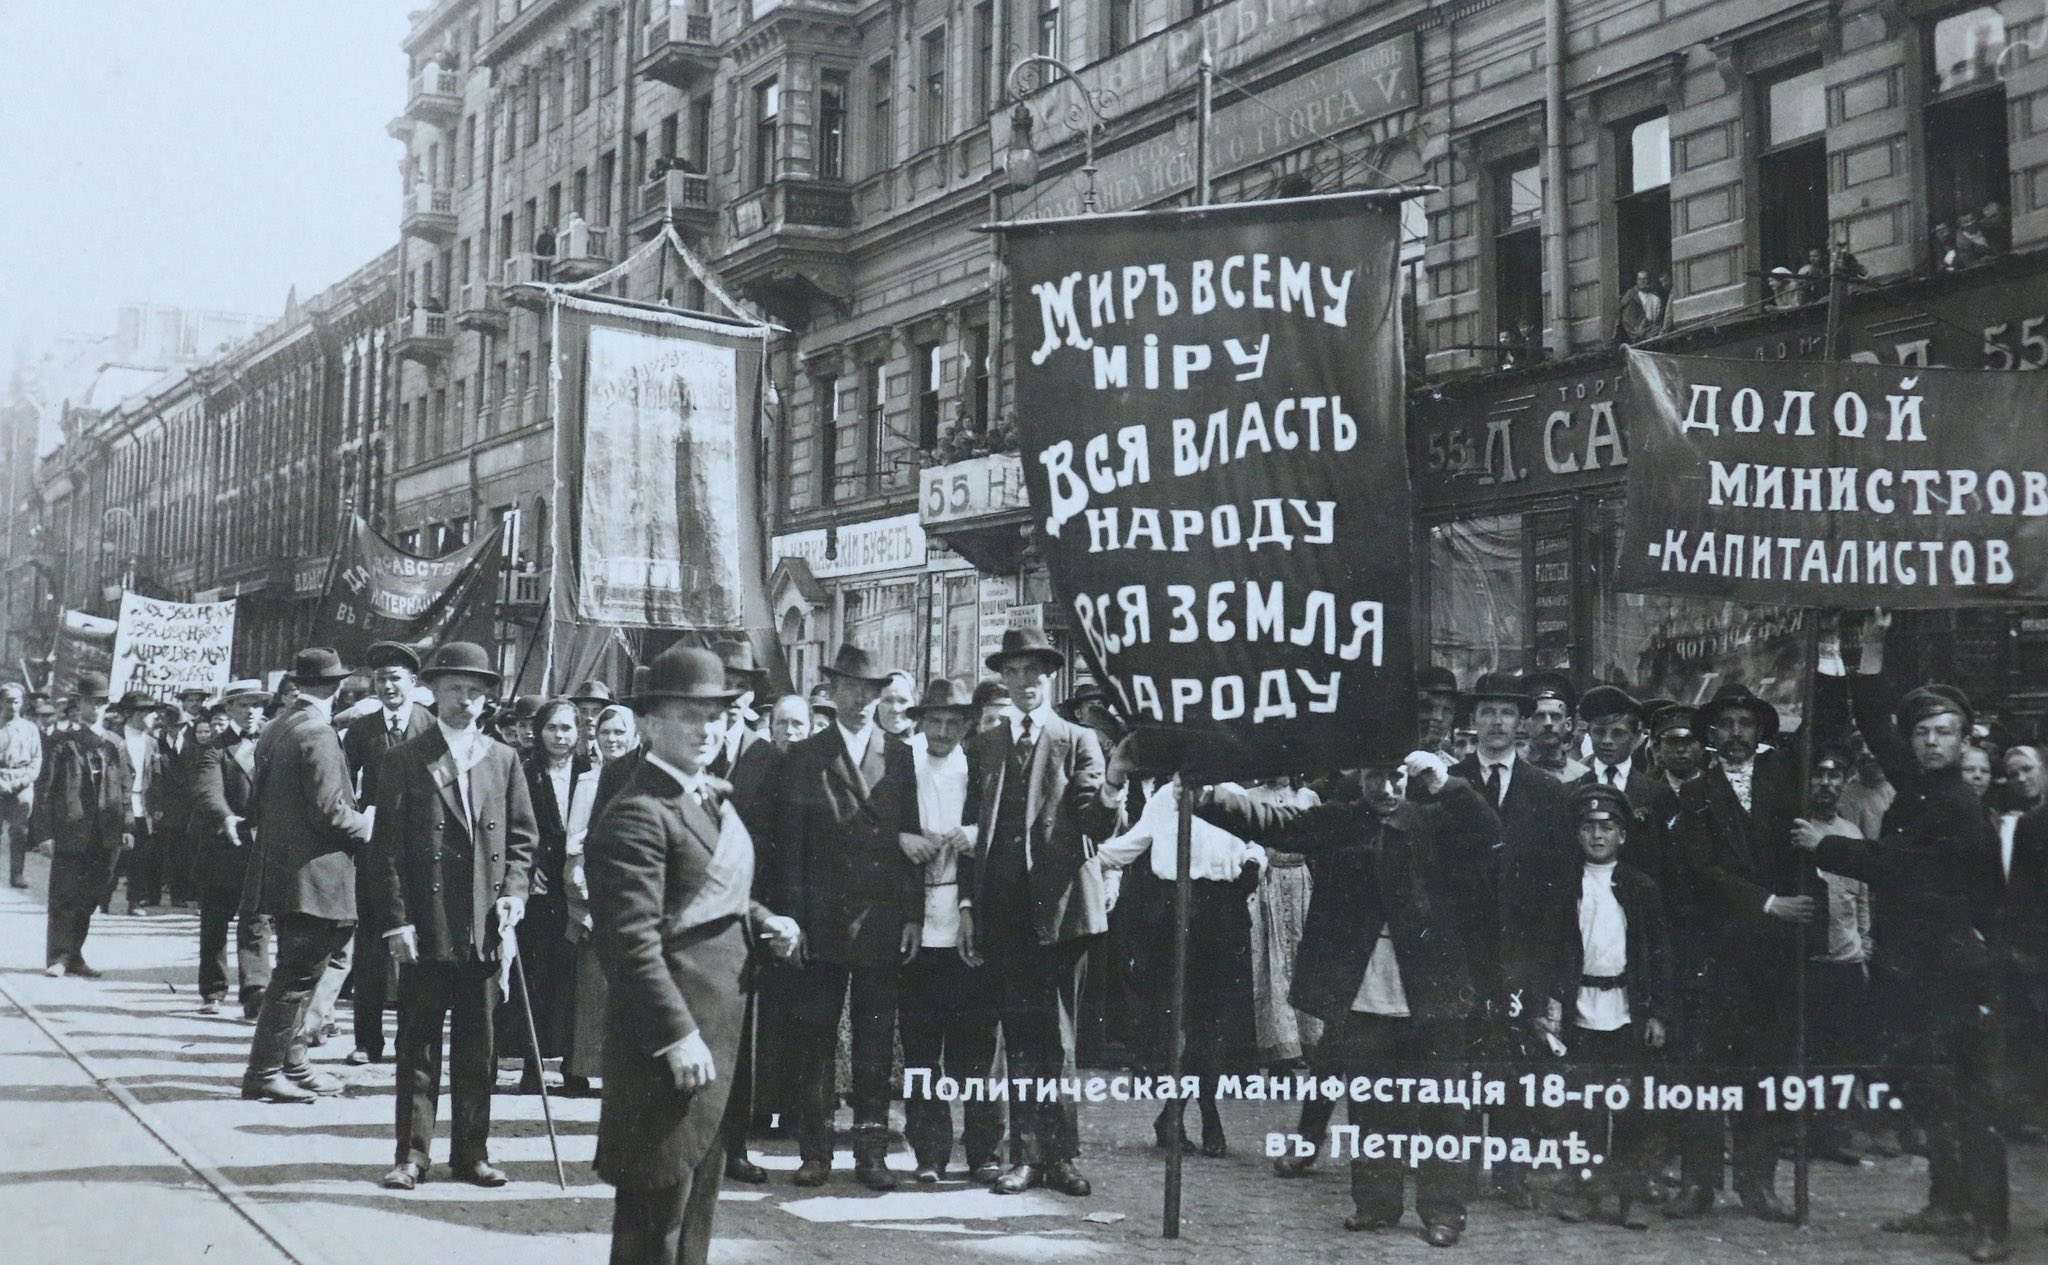 """This postcard shows a demonstration on the Nevsky Prospect, at Petrograd. The title reads """"Political demonstration of the 18th of June, 1917, at Petrograd"""". Credit: Flickr"""